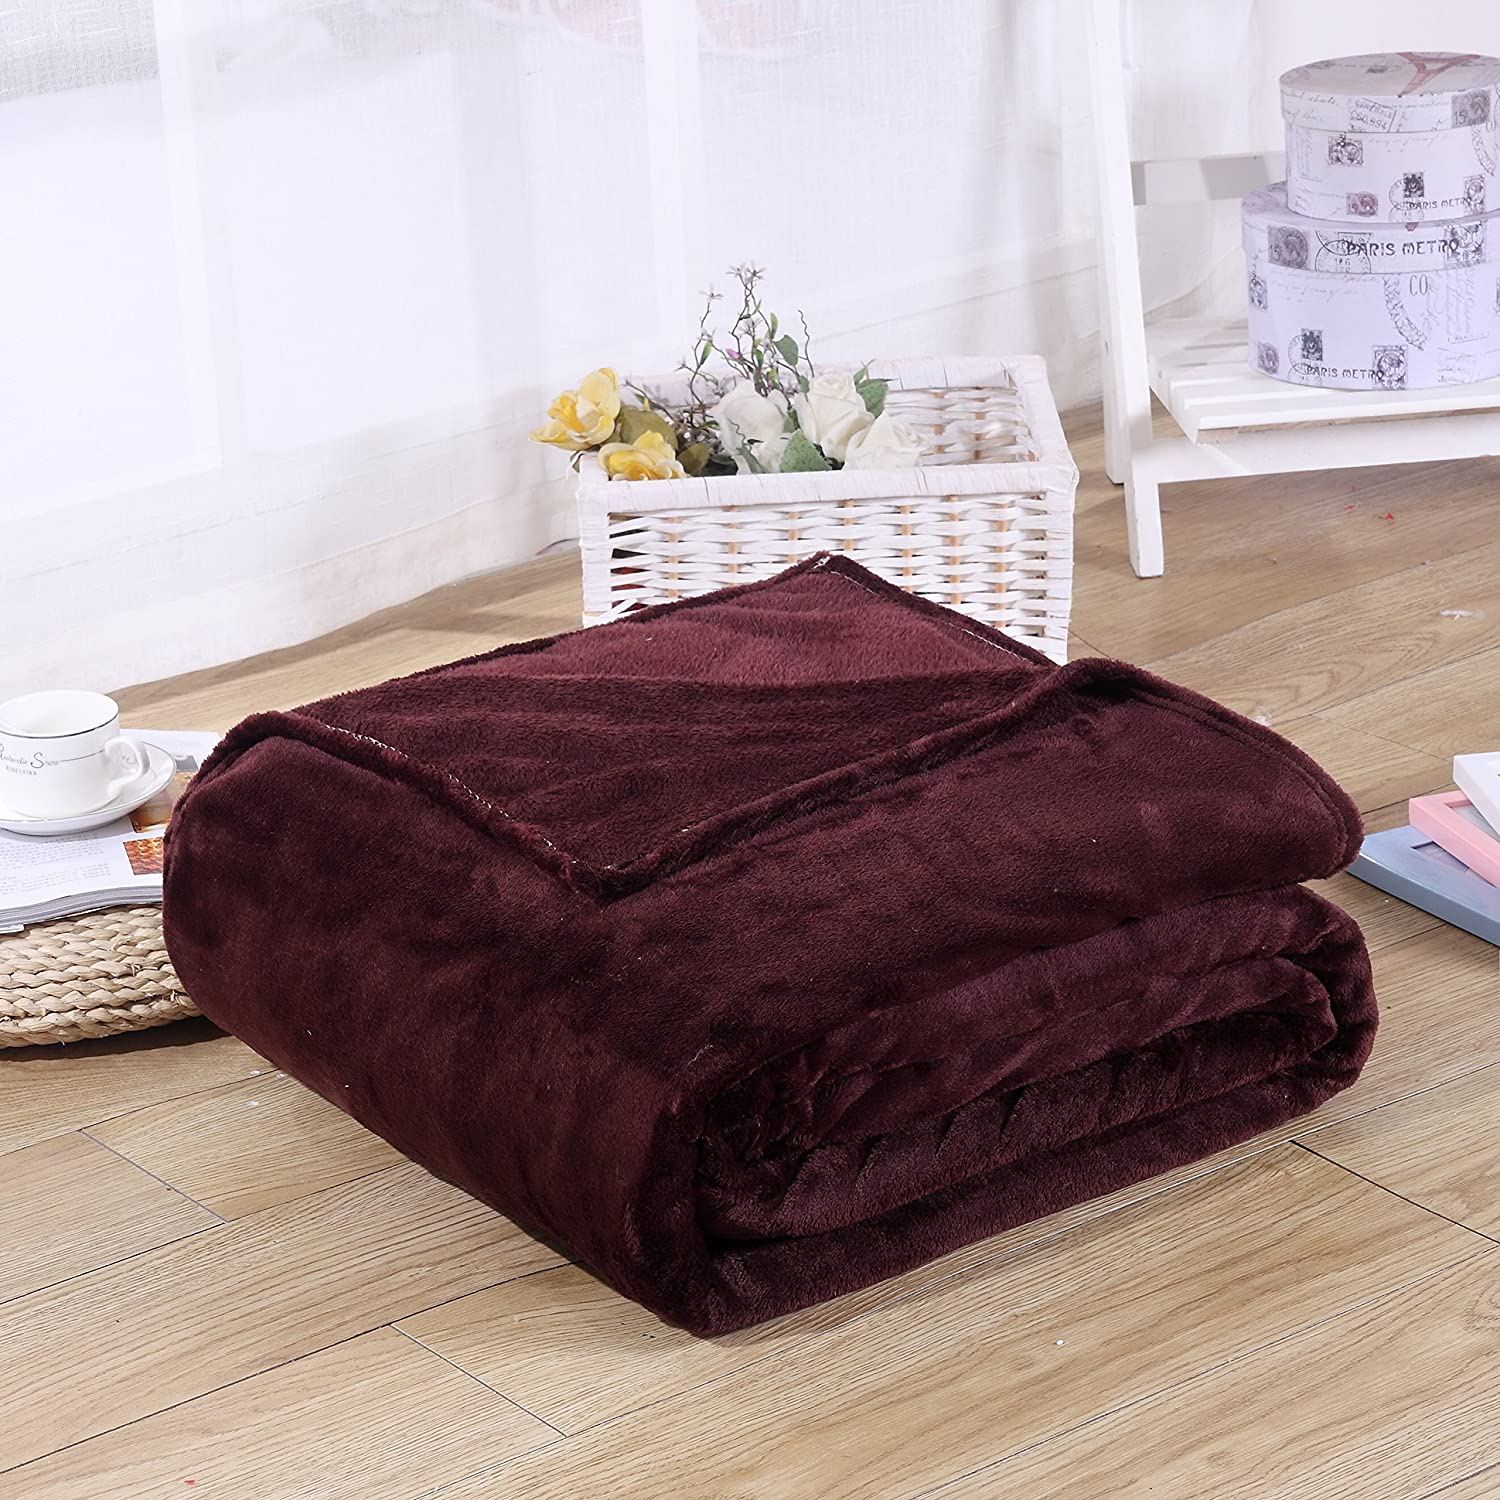 Super Soft Velvet Plush Throw, Fleece Flannel Home Couch Baby Warm Blanket, Popular Neutral Colors, 27